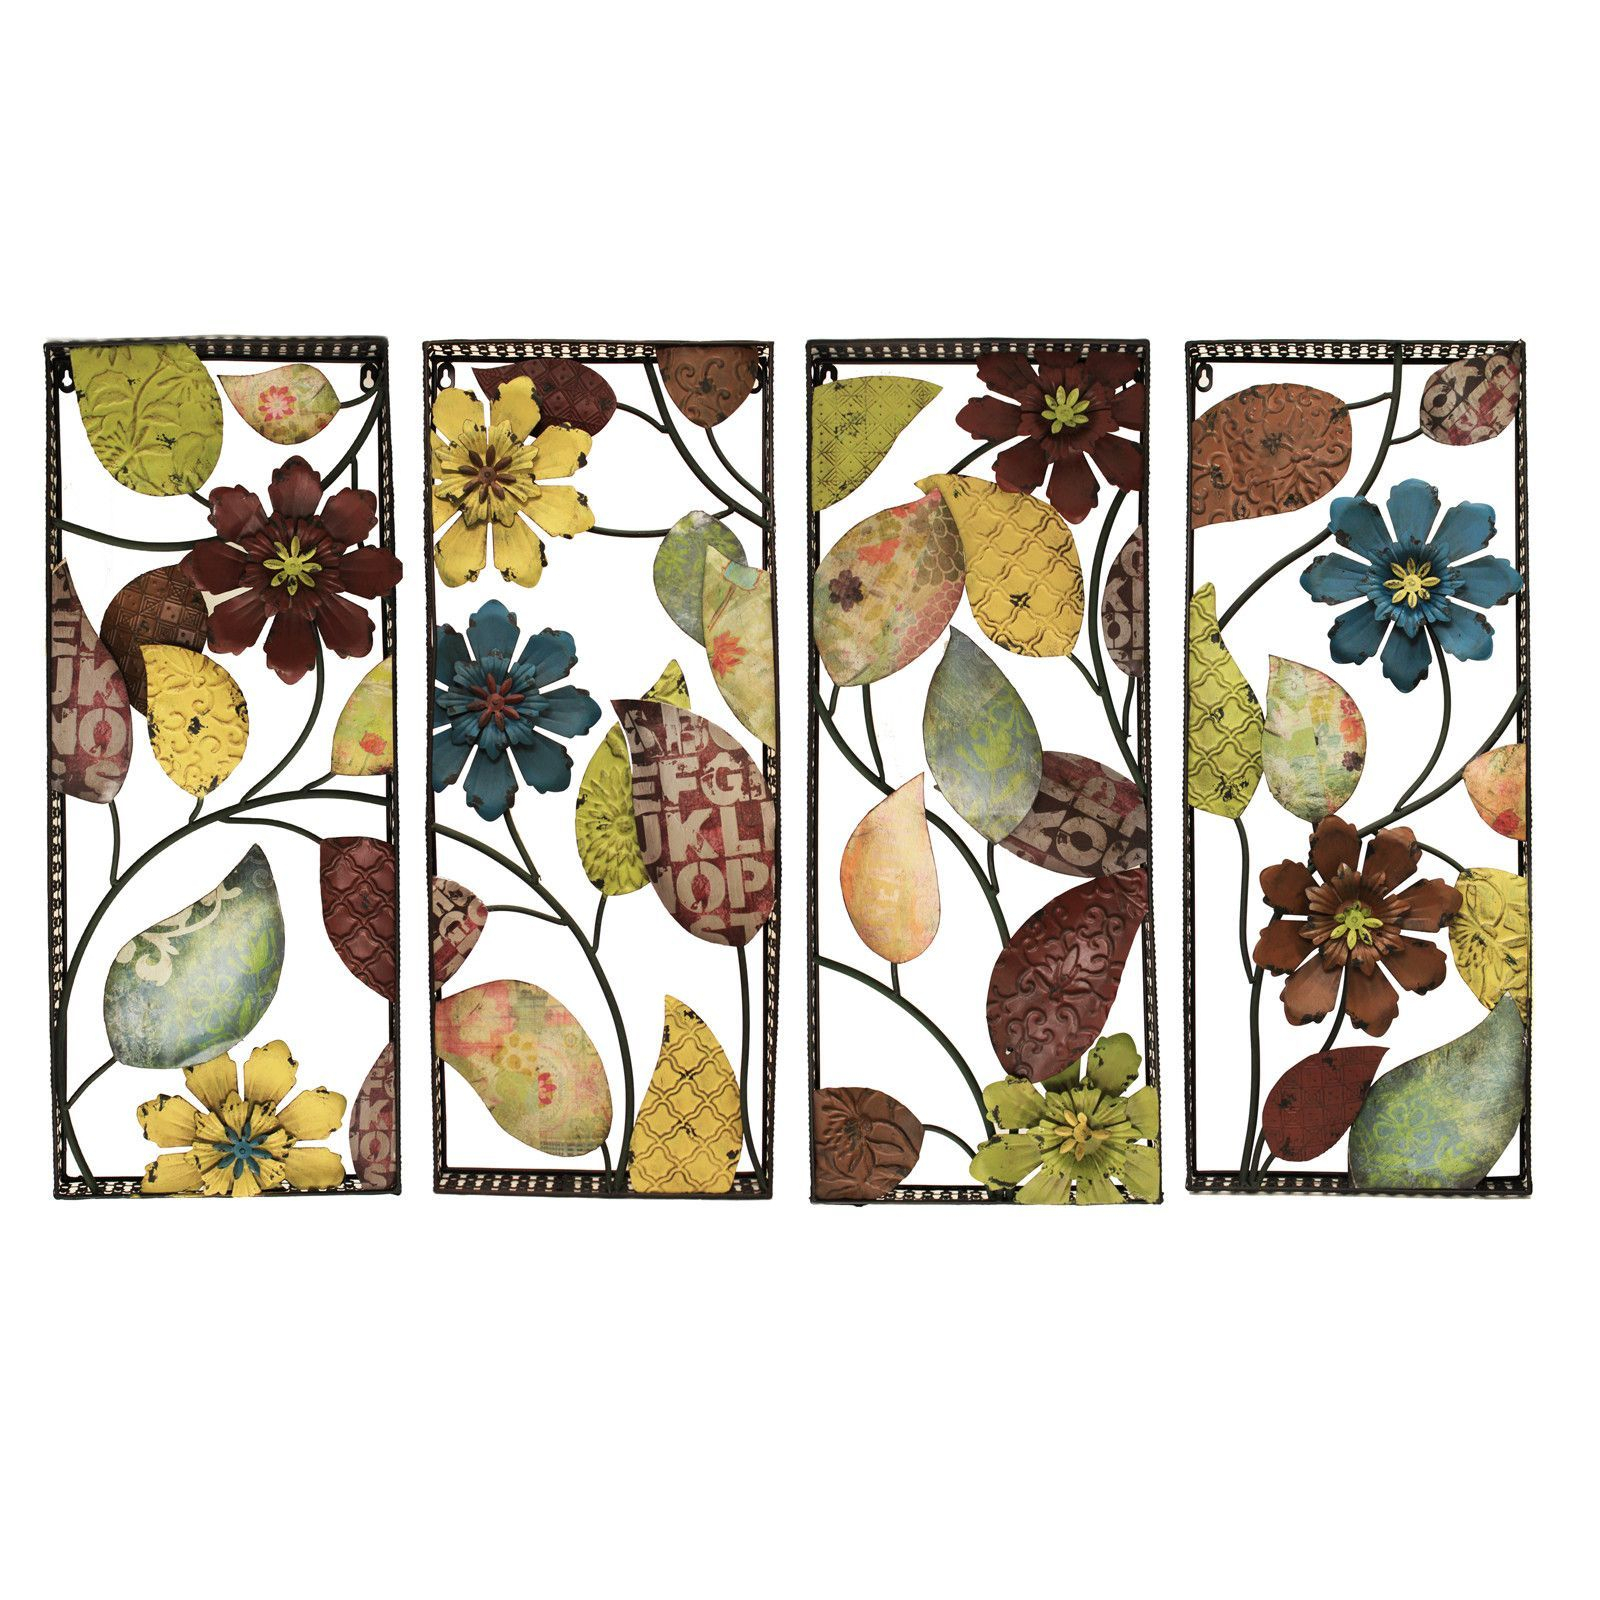 4 Piece Urban Designs Pop Art Flowers Wall Décor Set Intended For 4 Piece Wall Decor Sets (View 10 of 30)